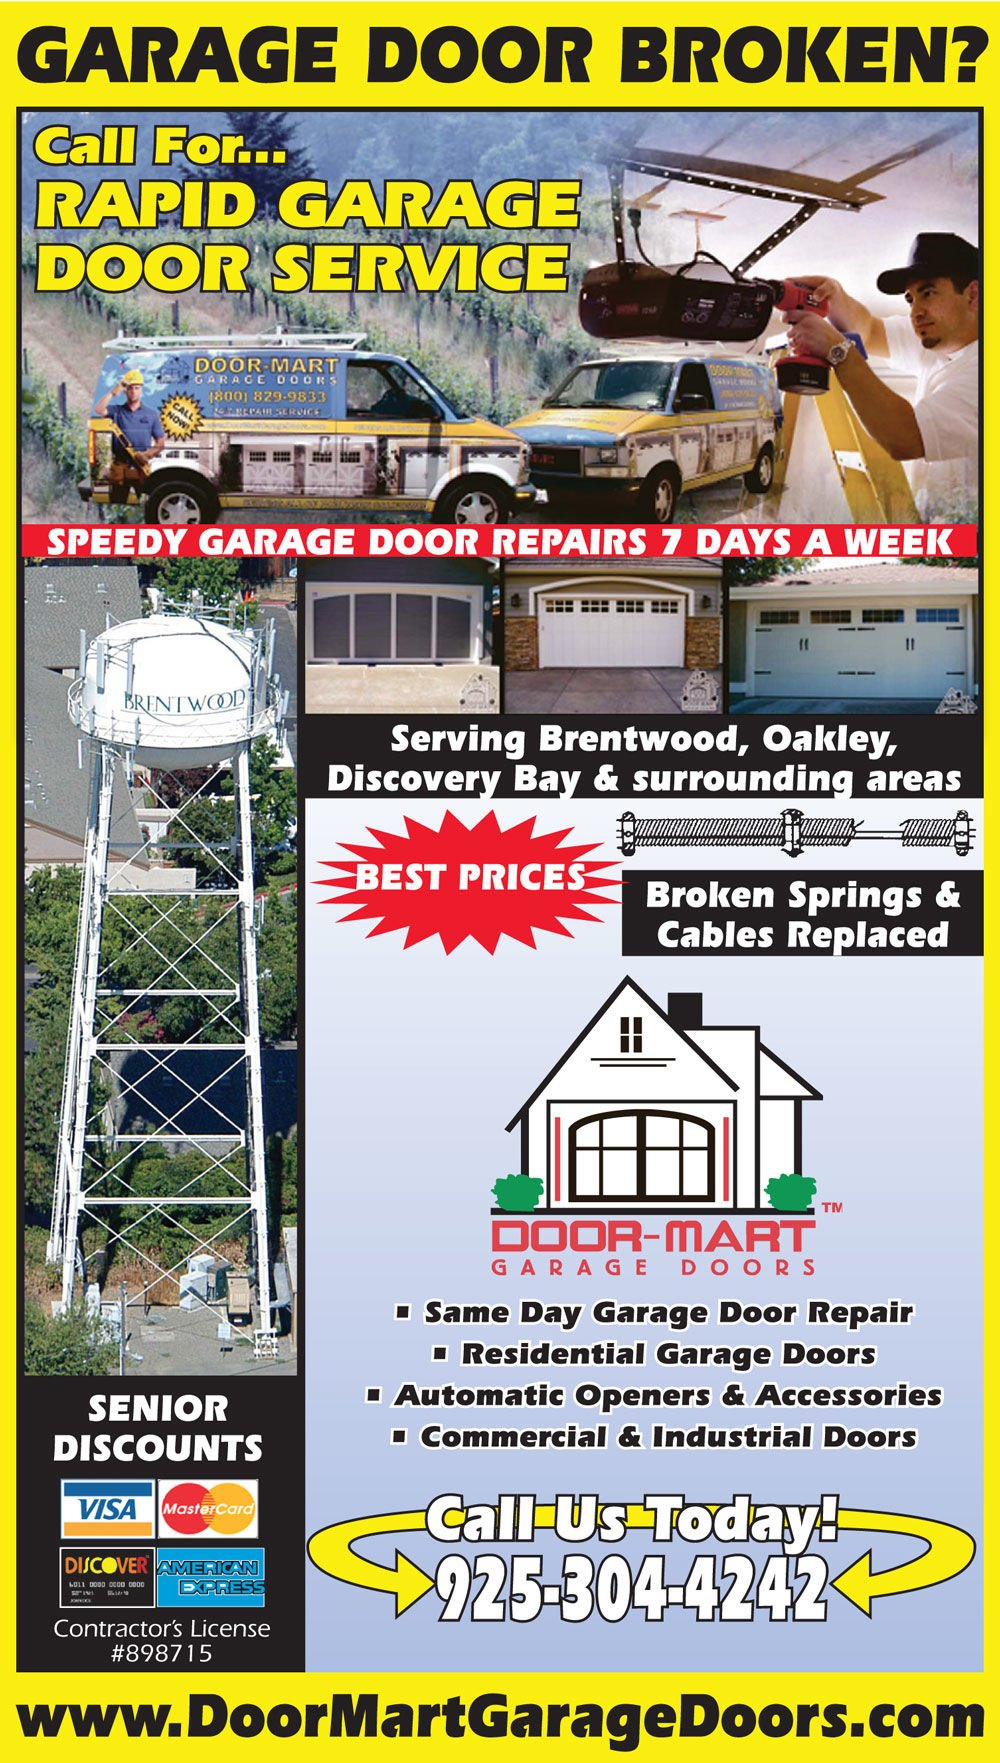 Door Mart Garage Doors